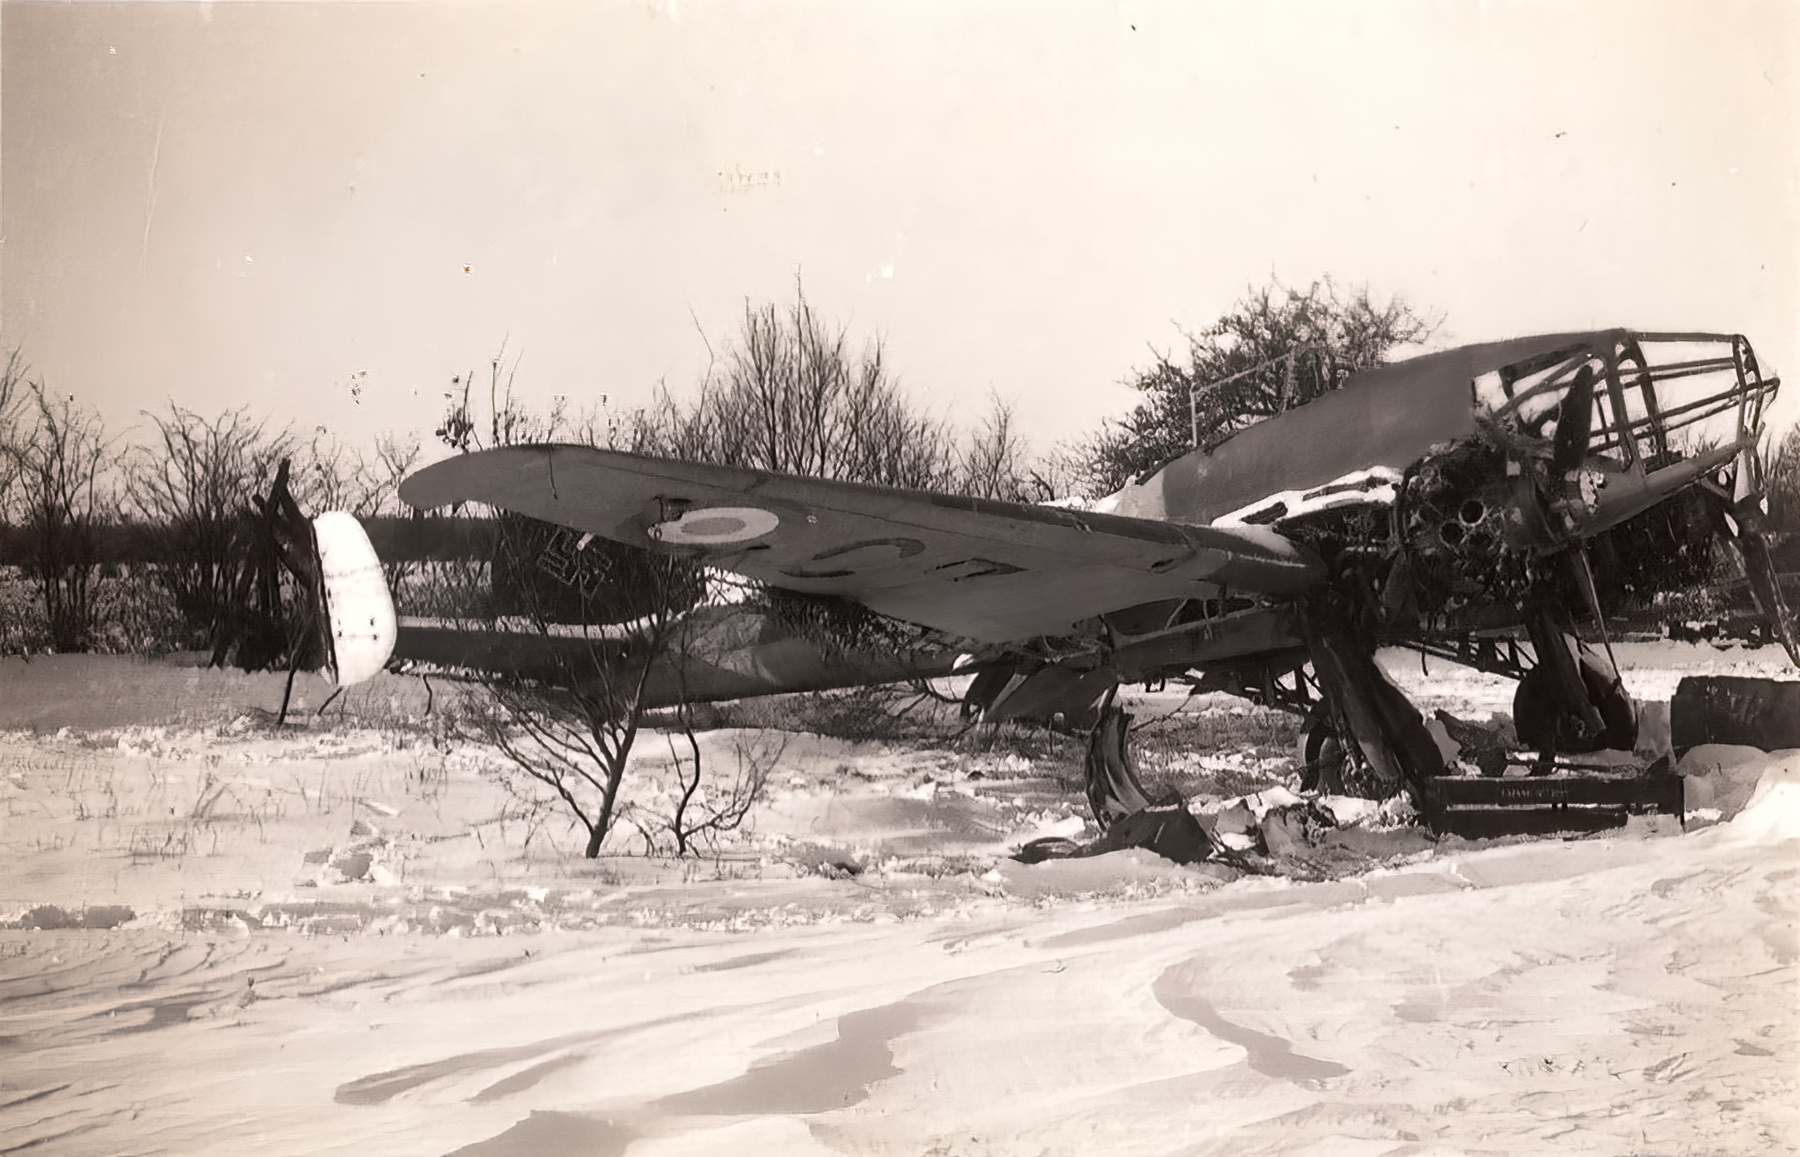 French Airforce Potez 63.11 destroyed whilst on the ground France May Jun 1940 ebay 01